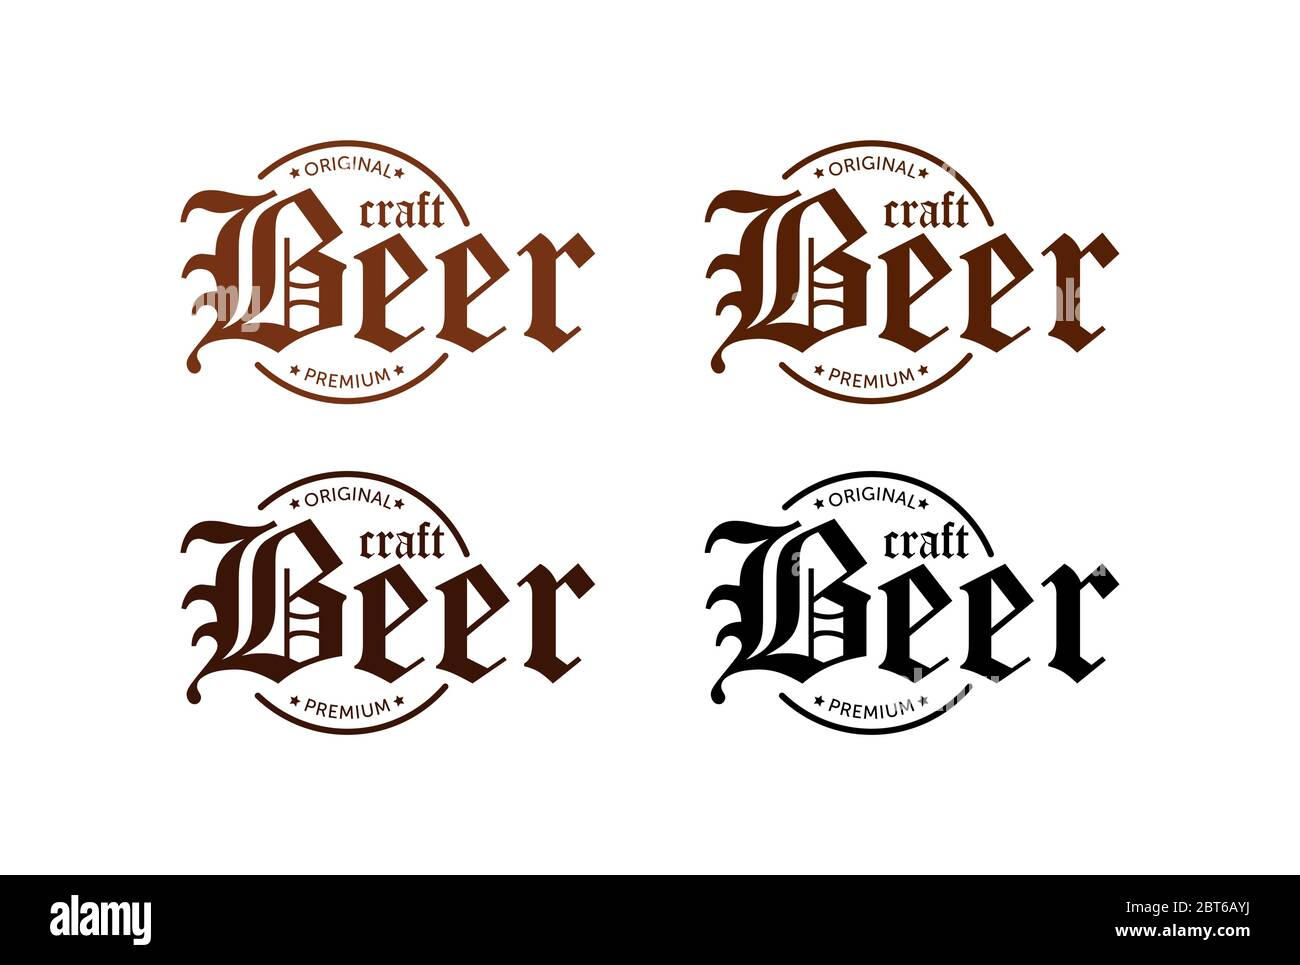 Page 3 Beer Logo High Resolution Stock Photography And Images Alamy